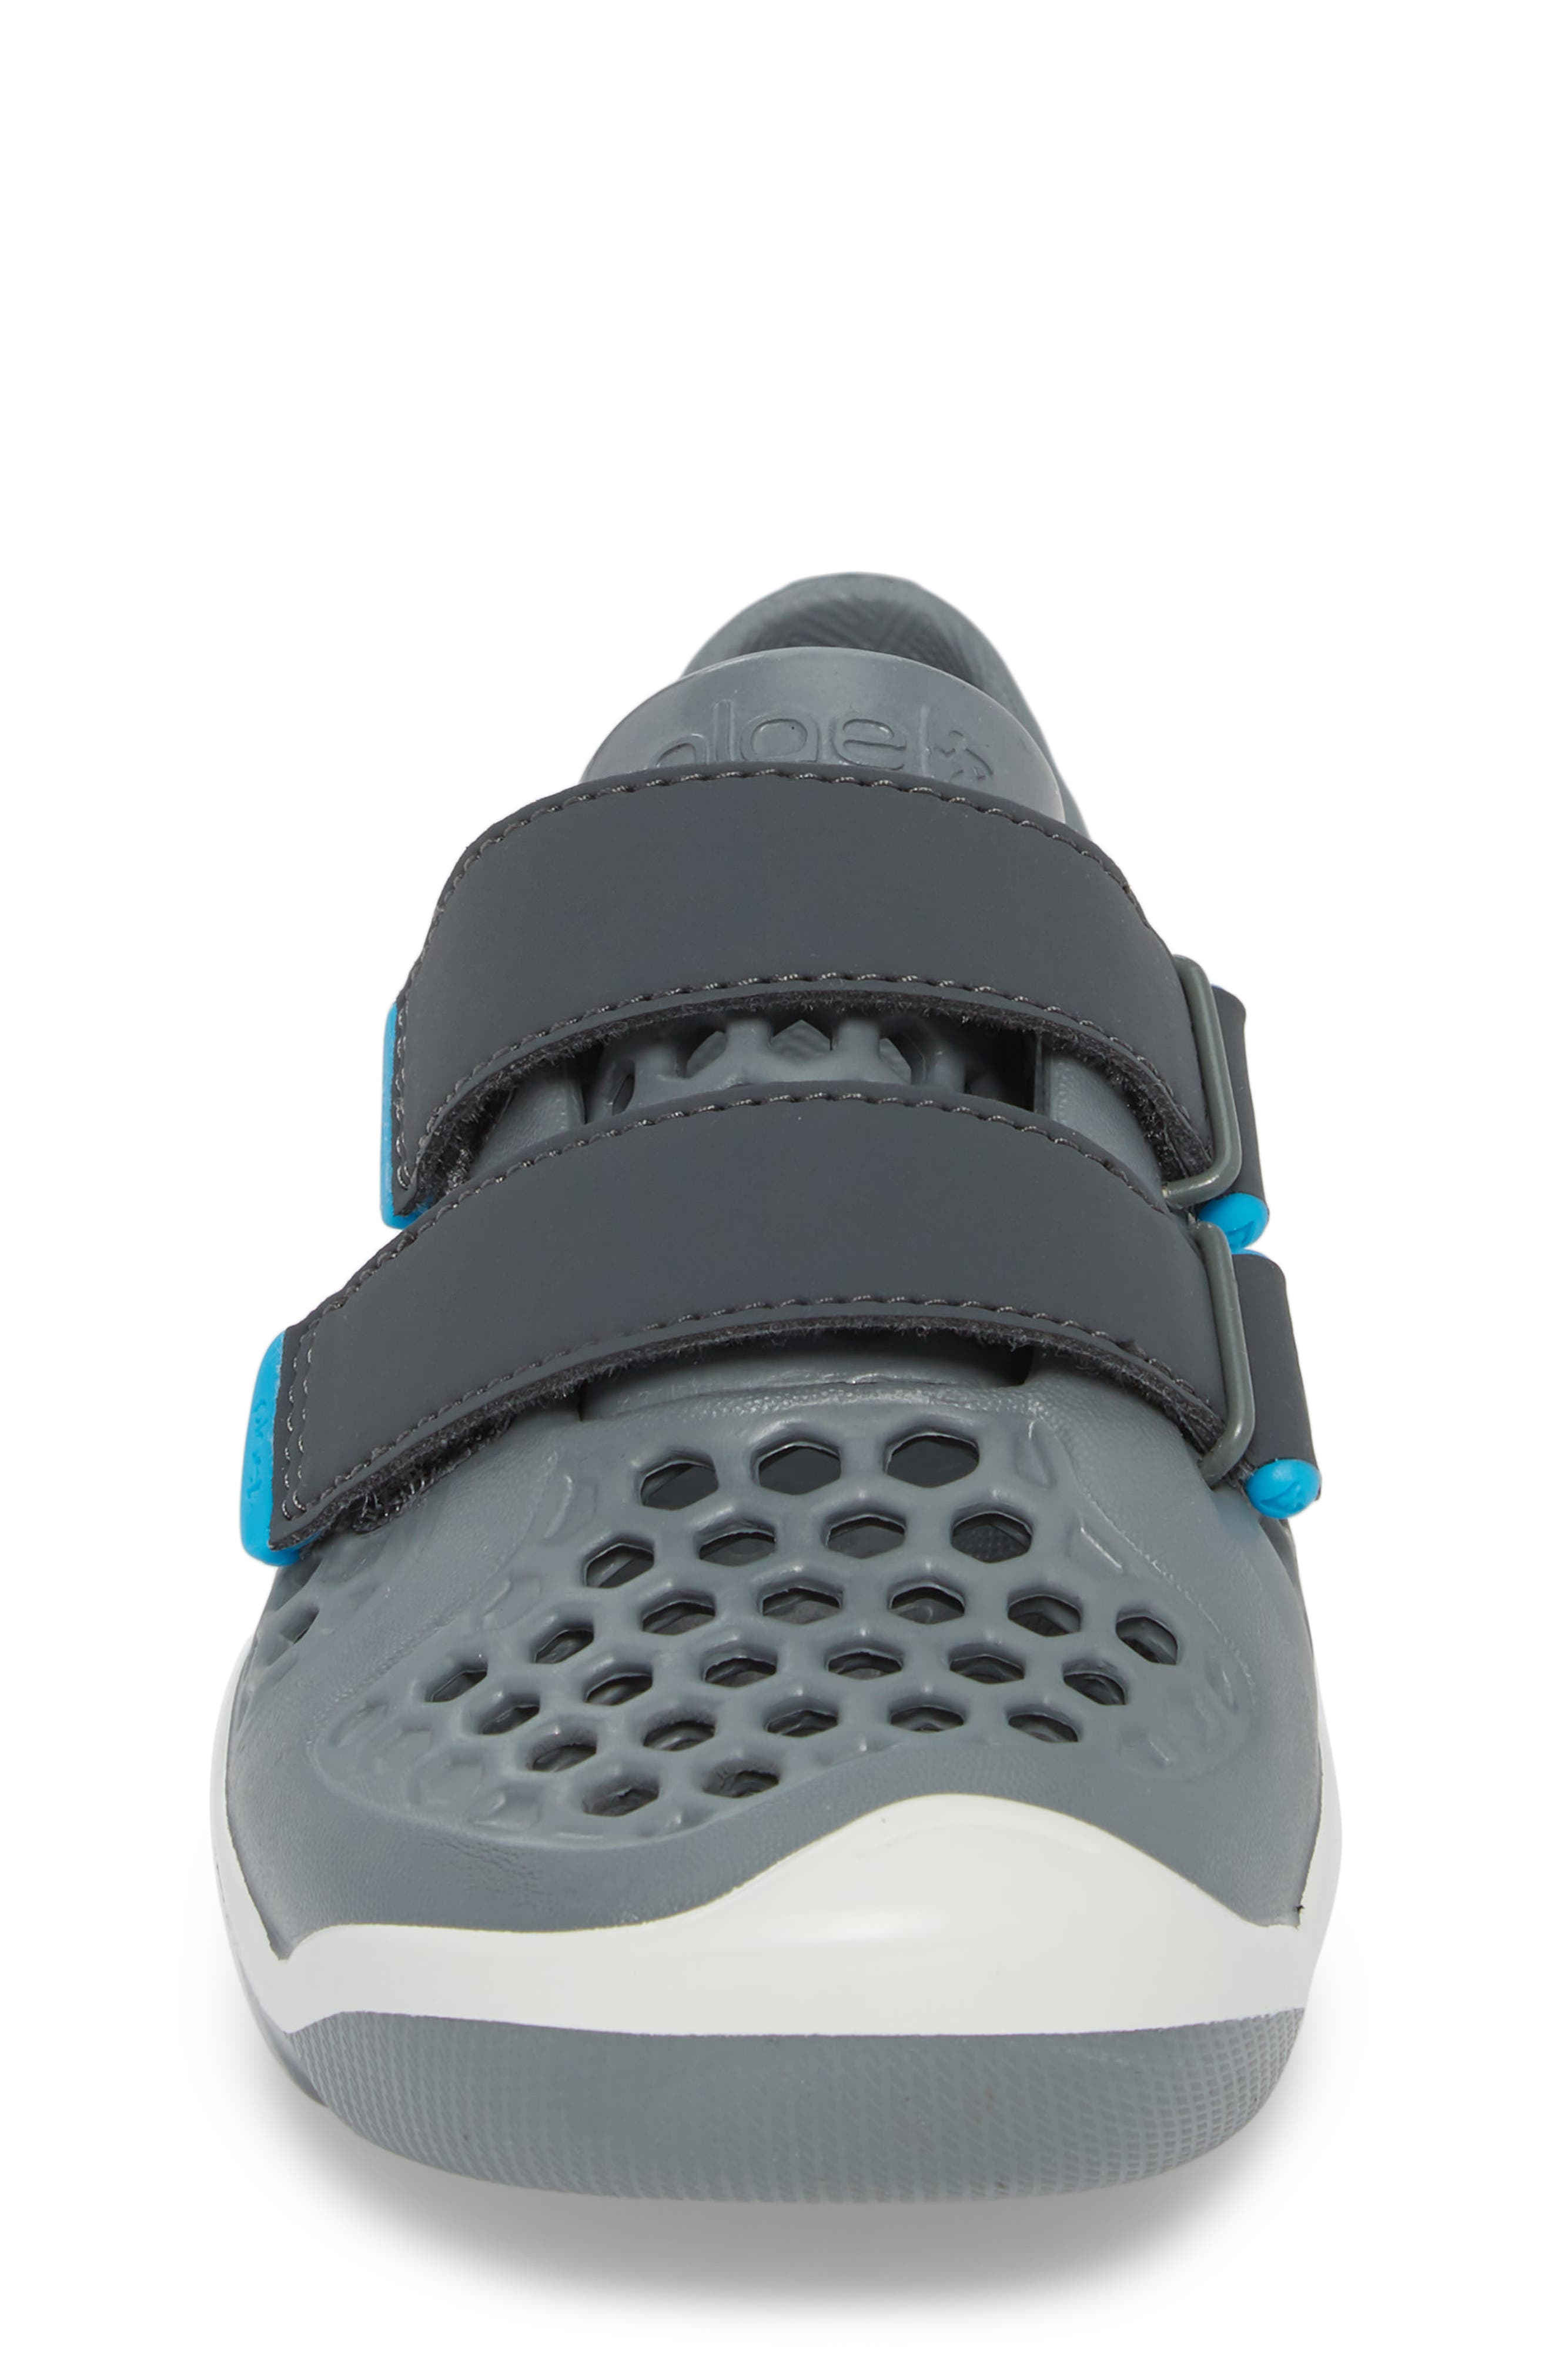 Mimo Customizable Sneaker,                             Alternate thumbnail 4, color,                             SLATE